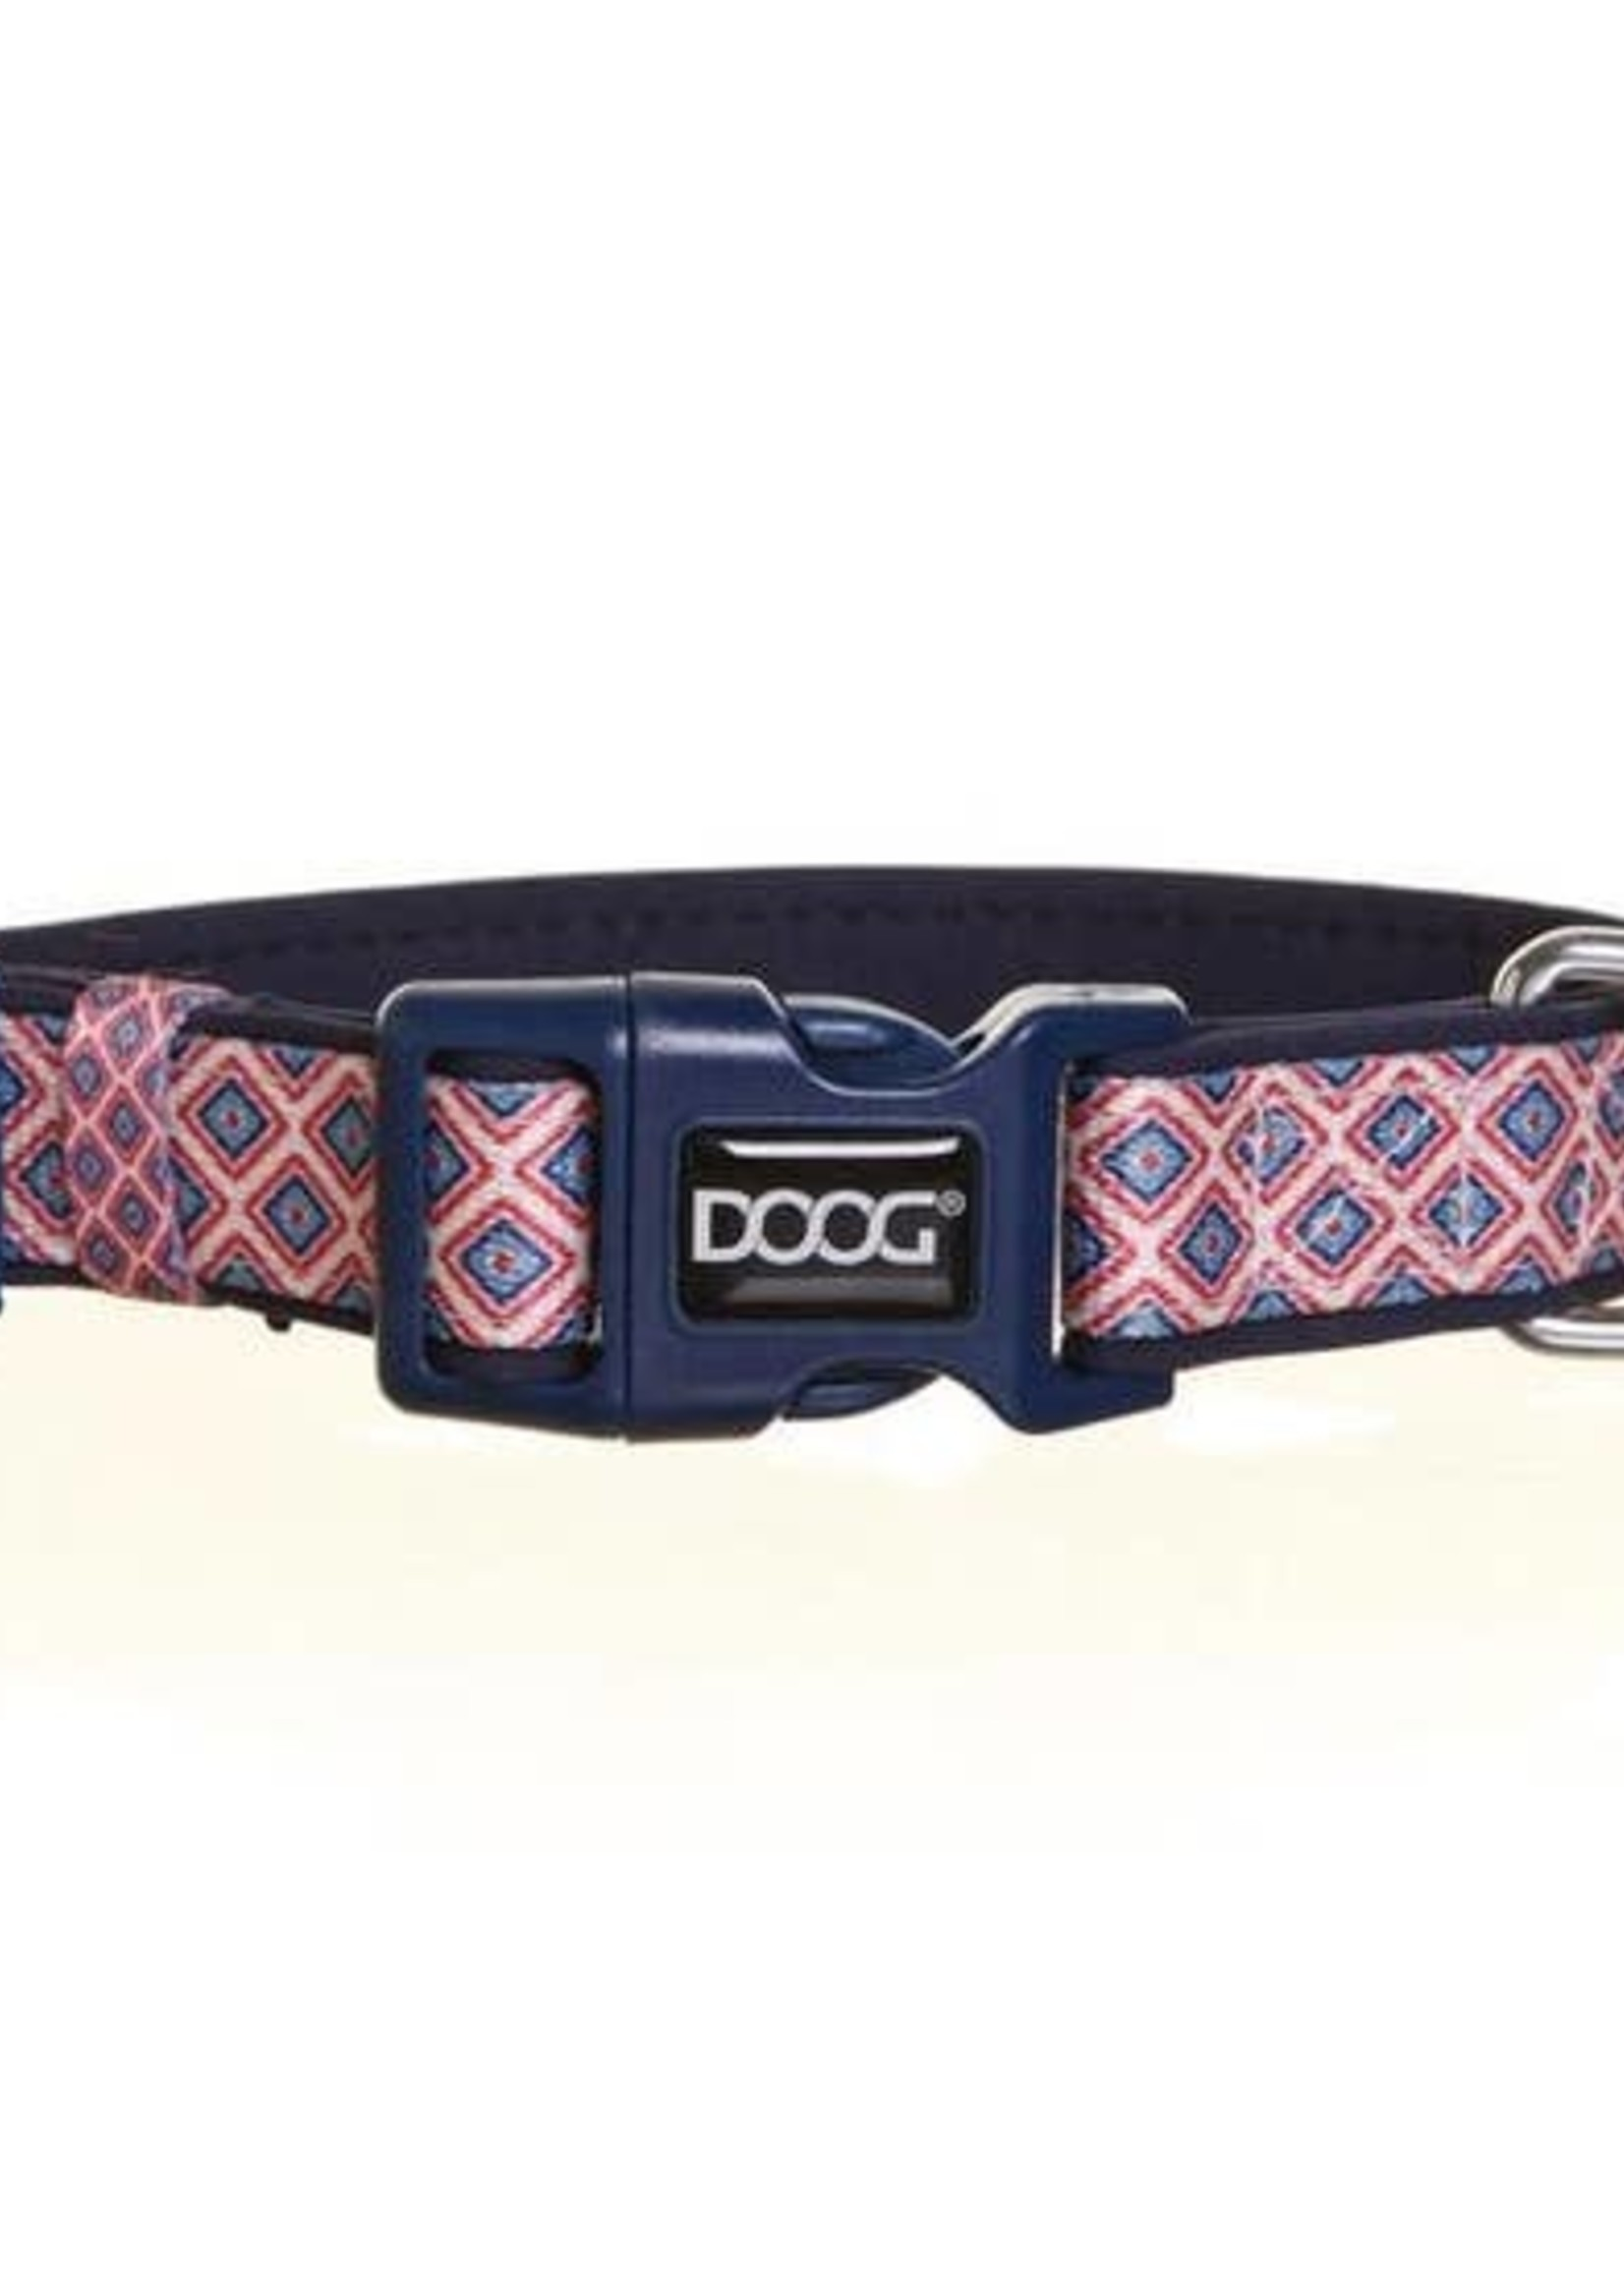 DOOG INC NEOPRENE DOG COLLAR - GROMIT XS